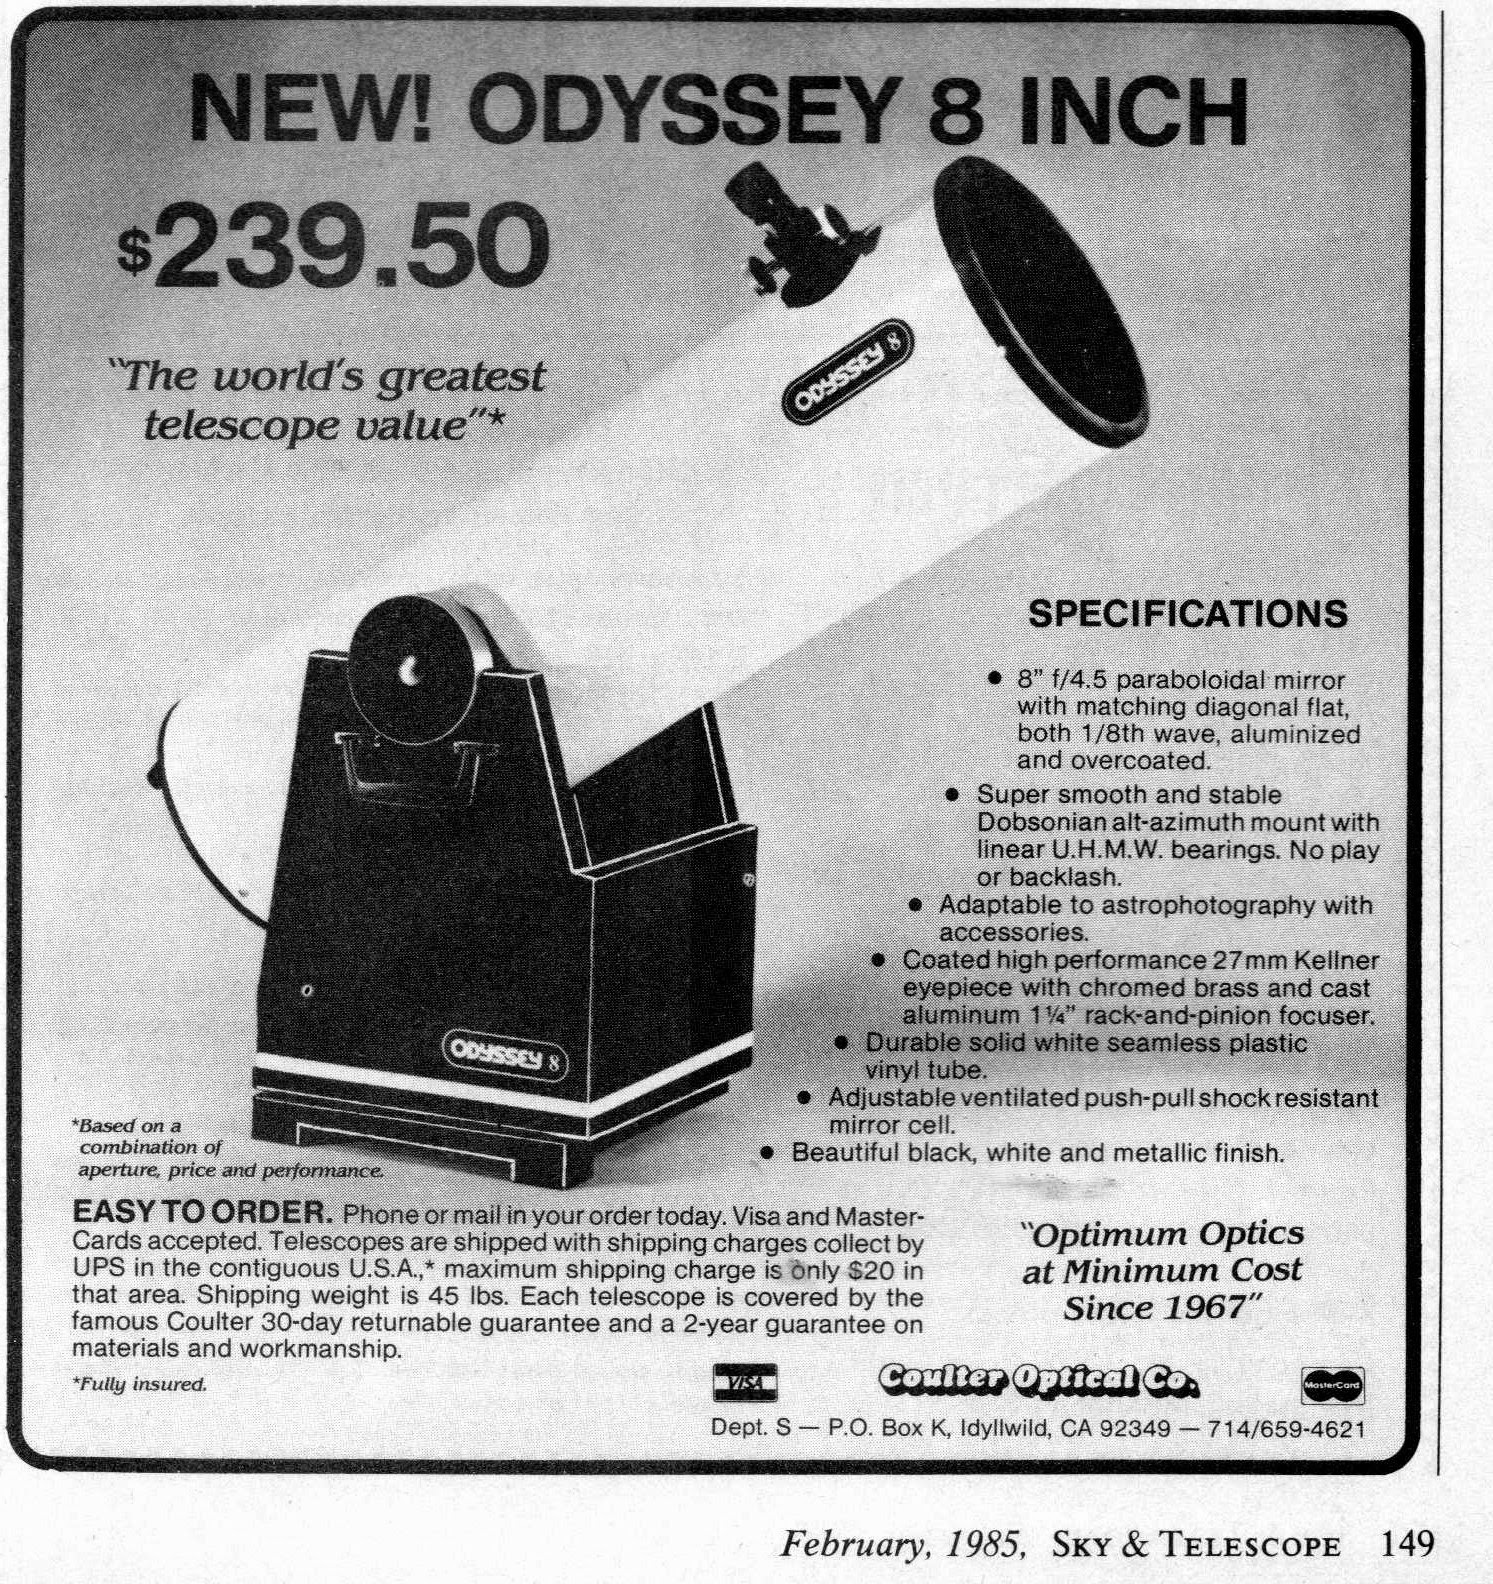 Astronomy Ad of the Day: FEBRUARY, 1985 (Sky & Telescope)